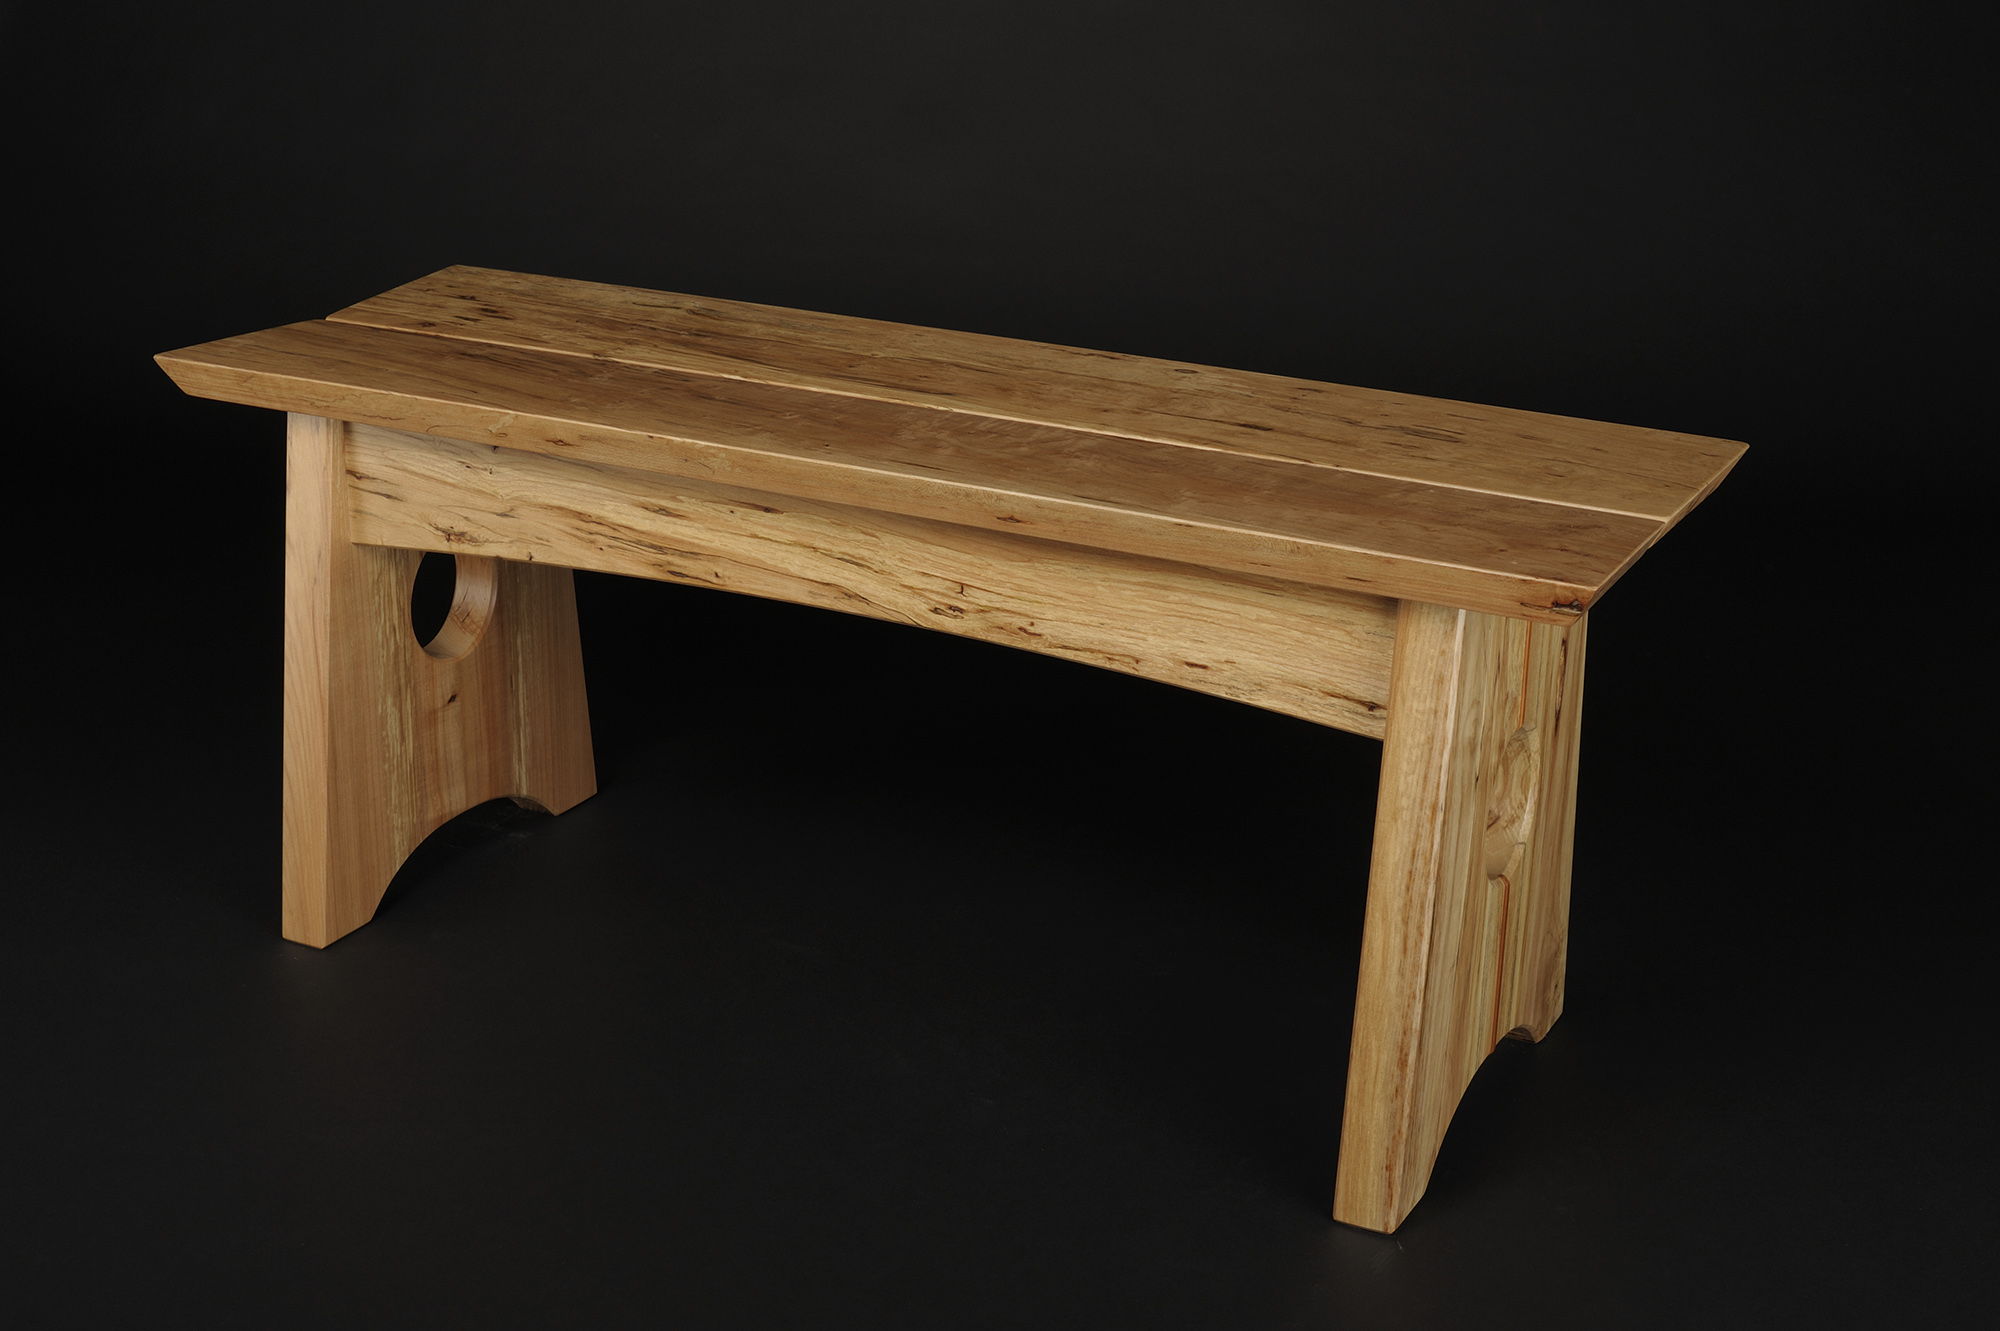 Maple wood benches saratoga woodworks maple wood benches sciox Image collections